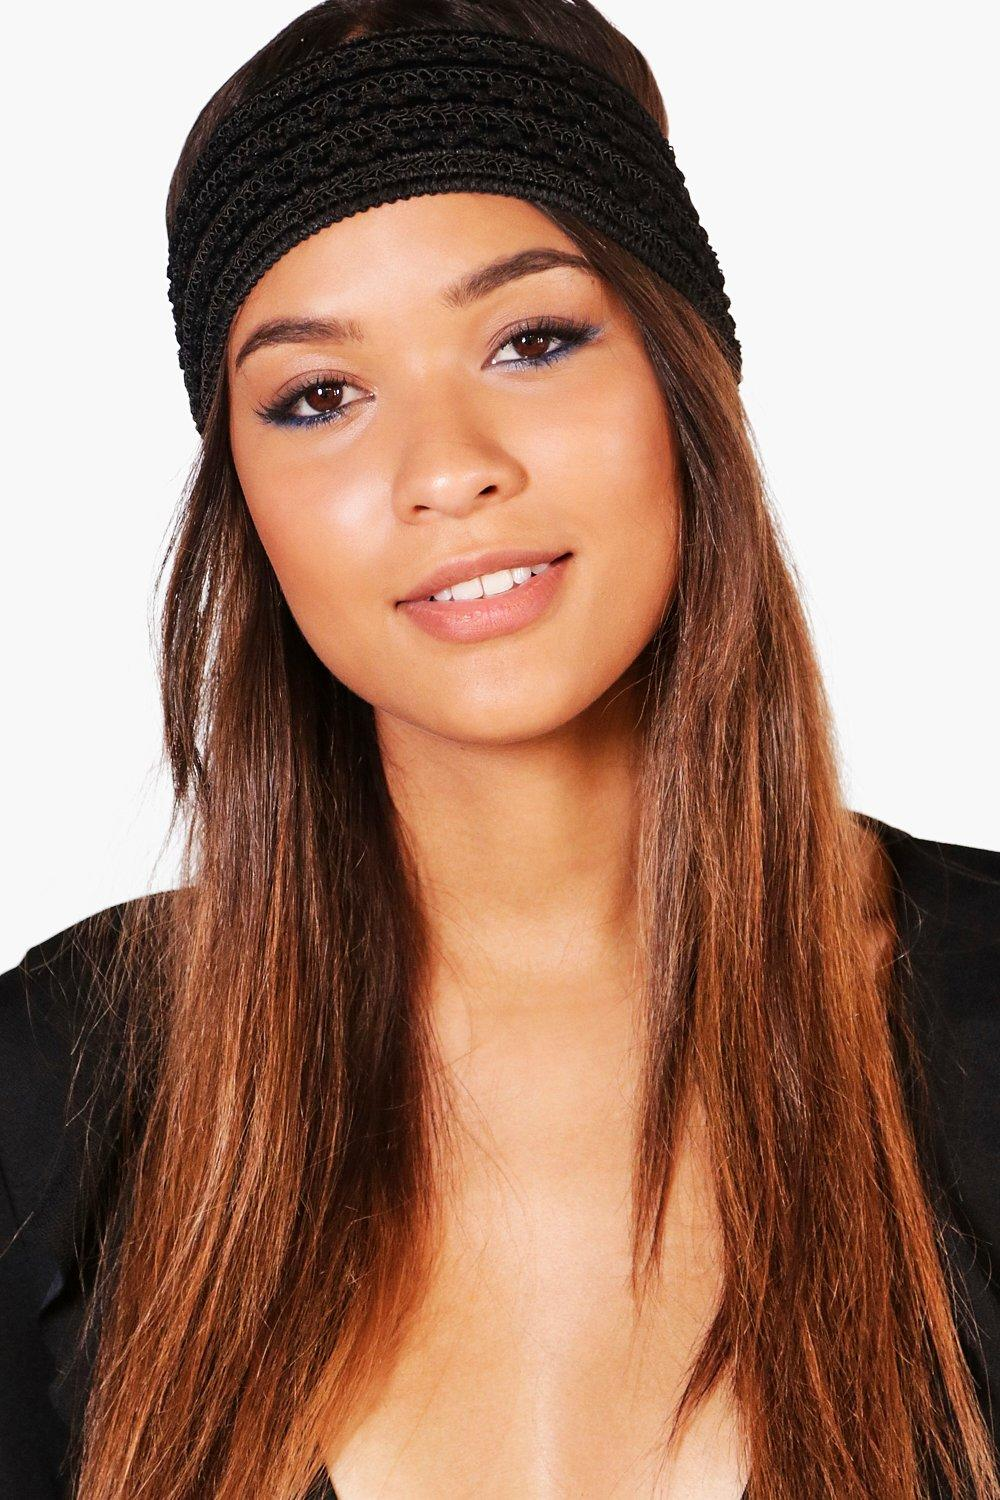 Plain Stretch Headband - black - Ellie Plain Stret